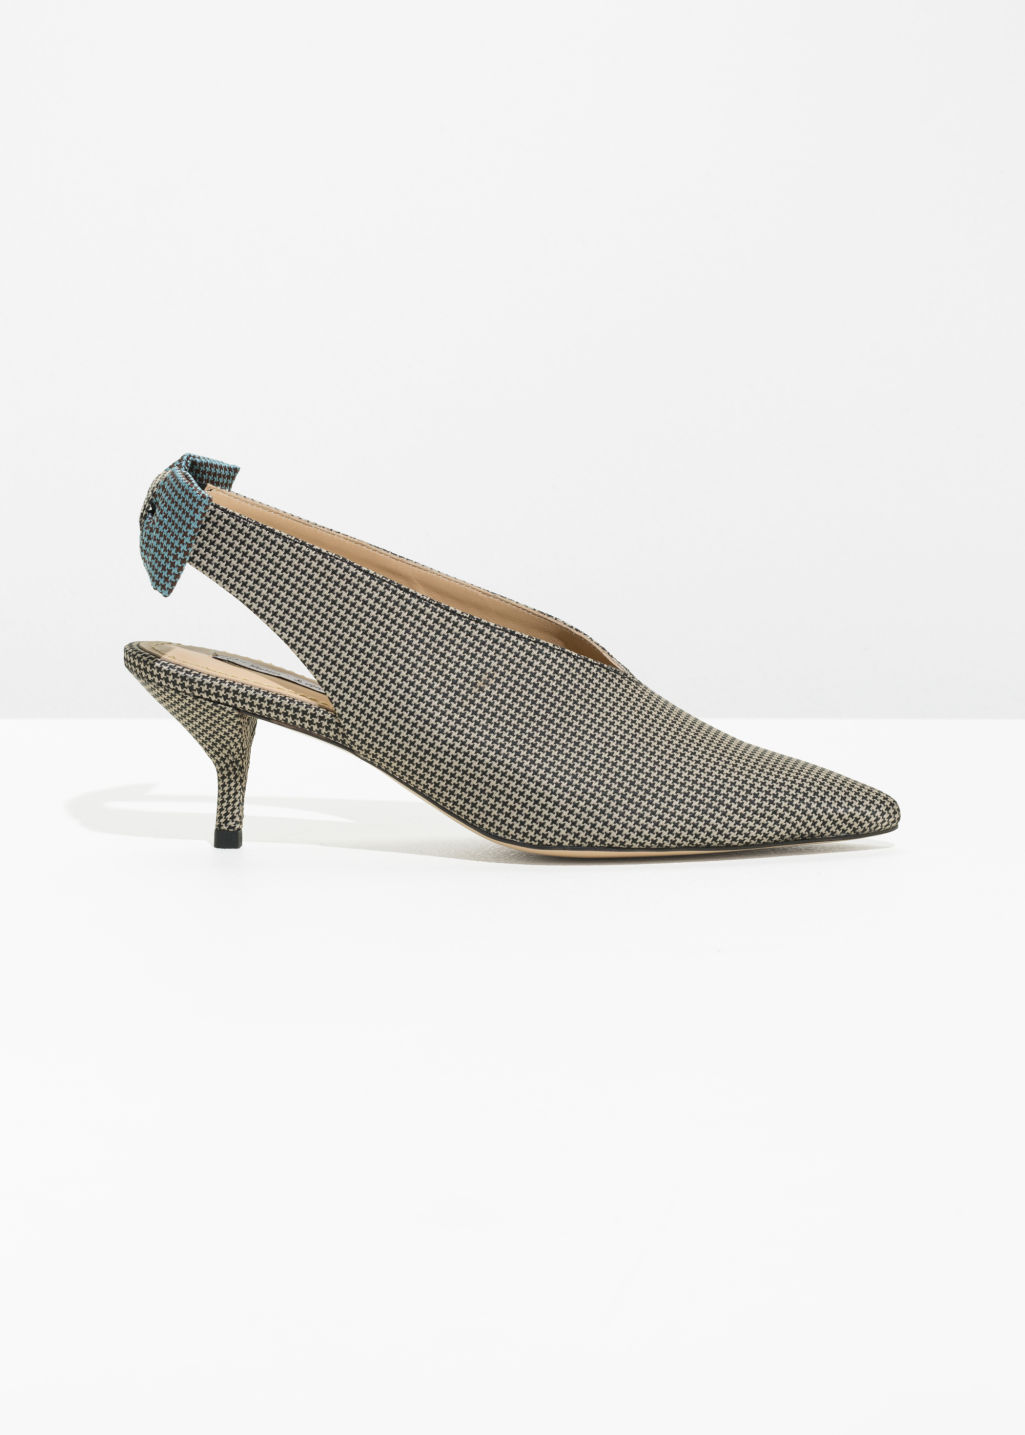 &Other Stories Kitten Heel Slingback Pumps